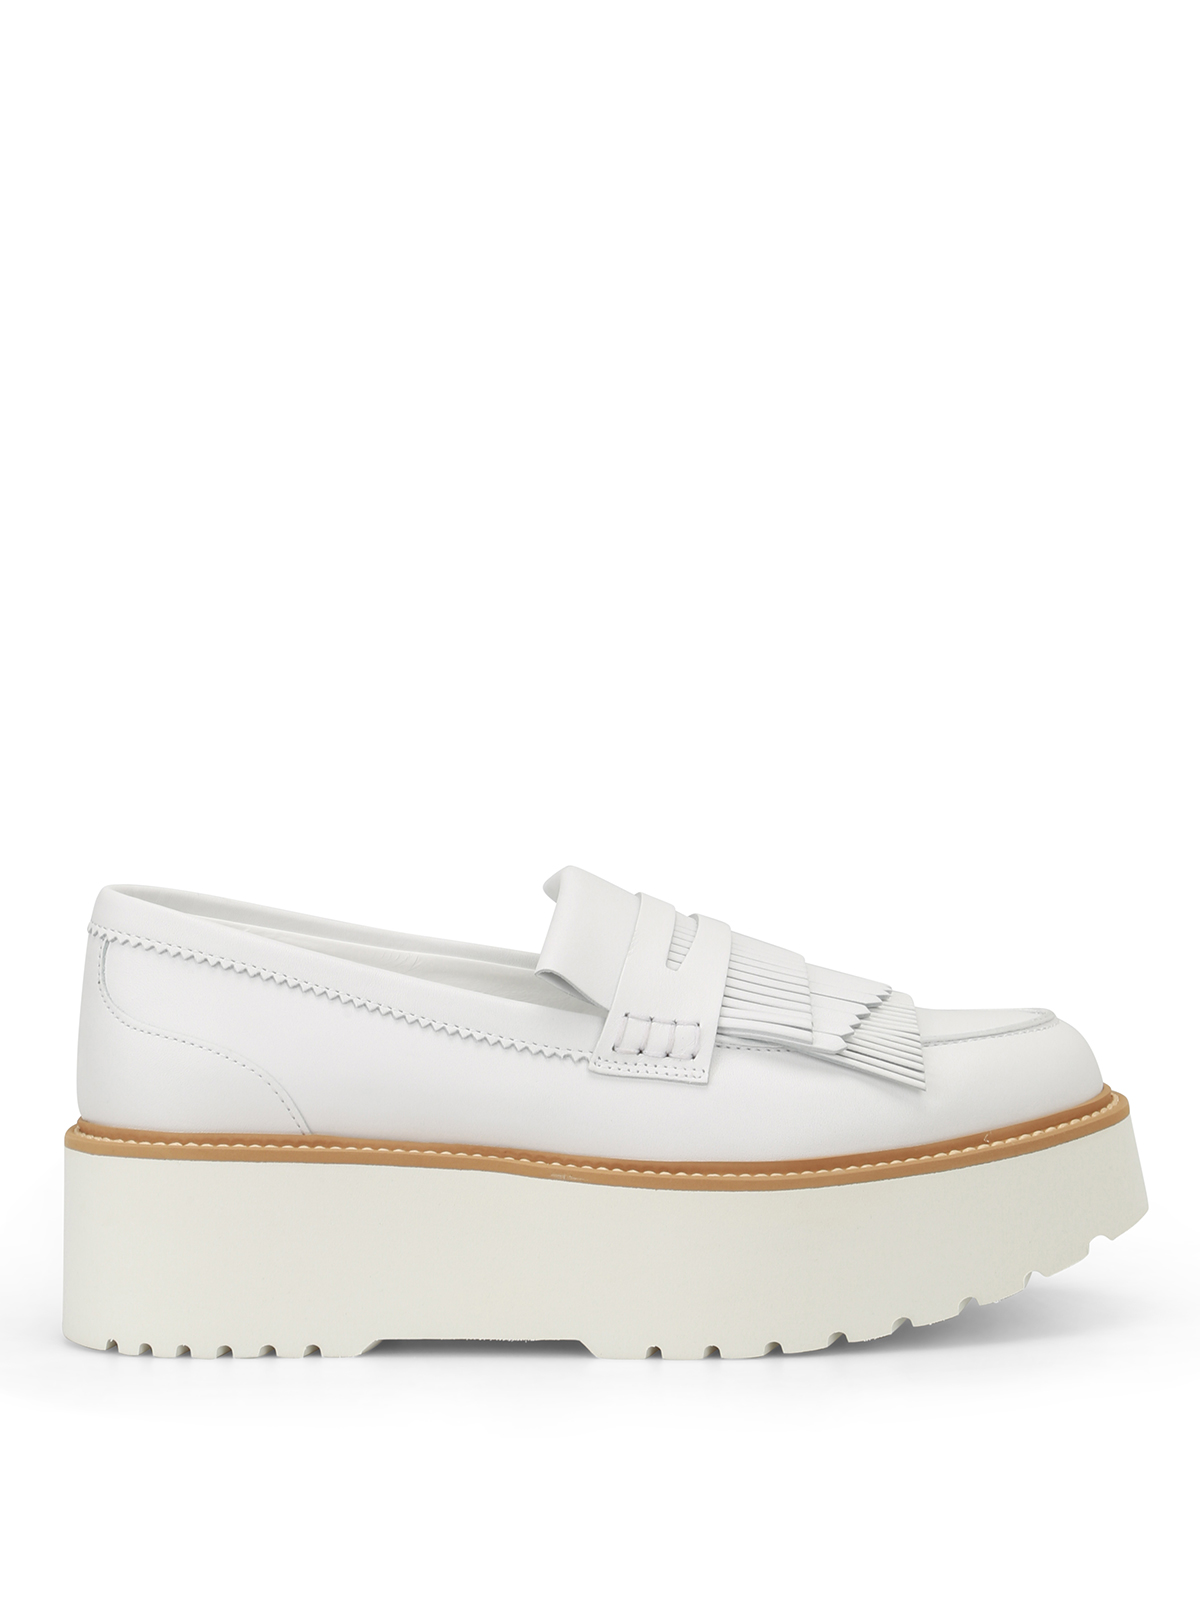 Hogan Route H355 Fringed White Leather Loafers